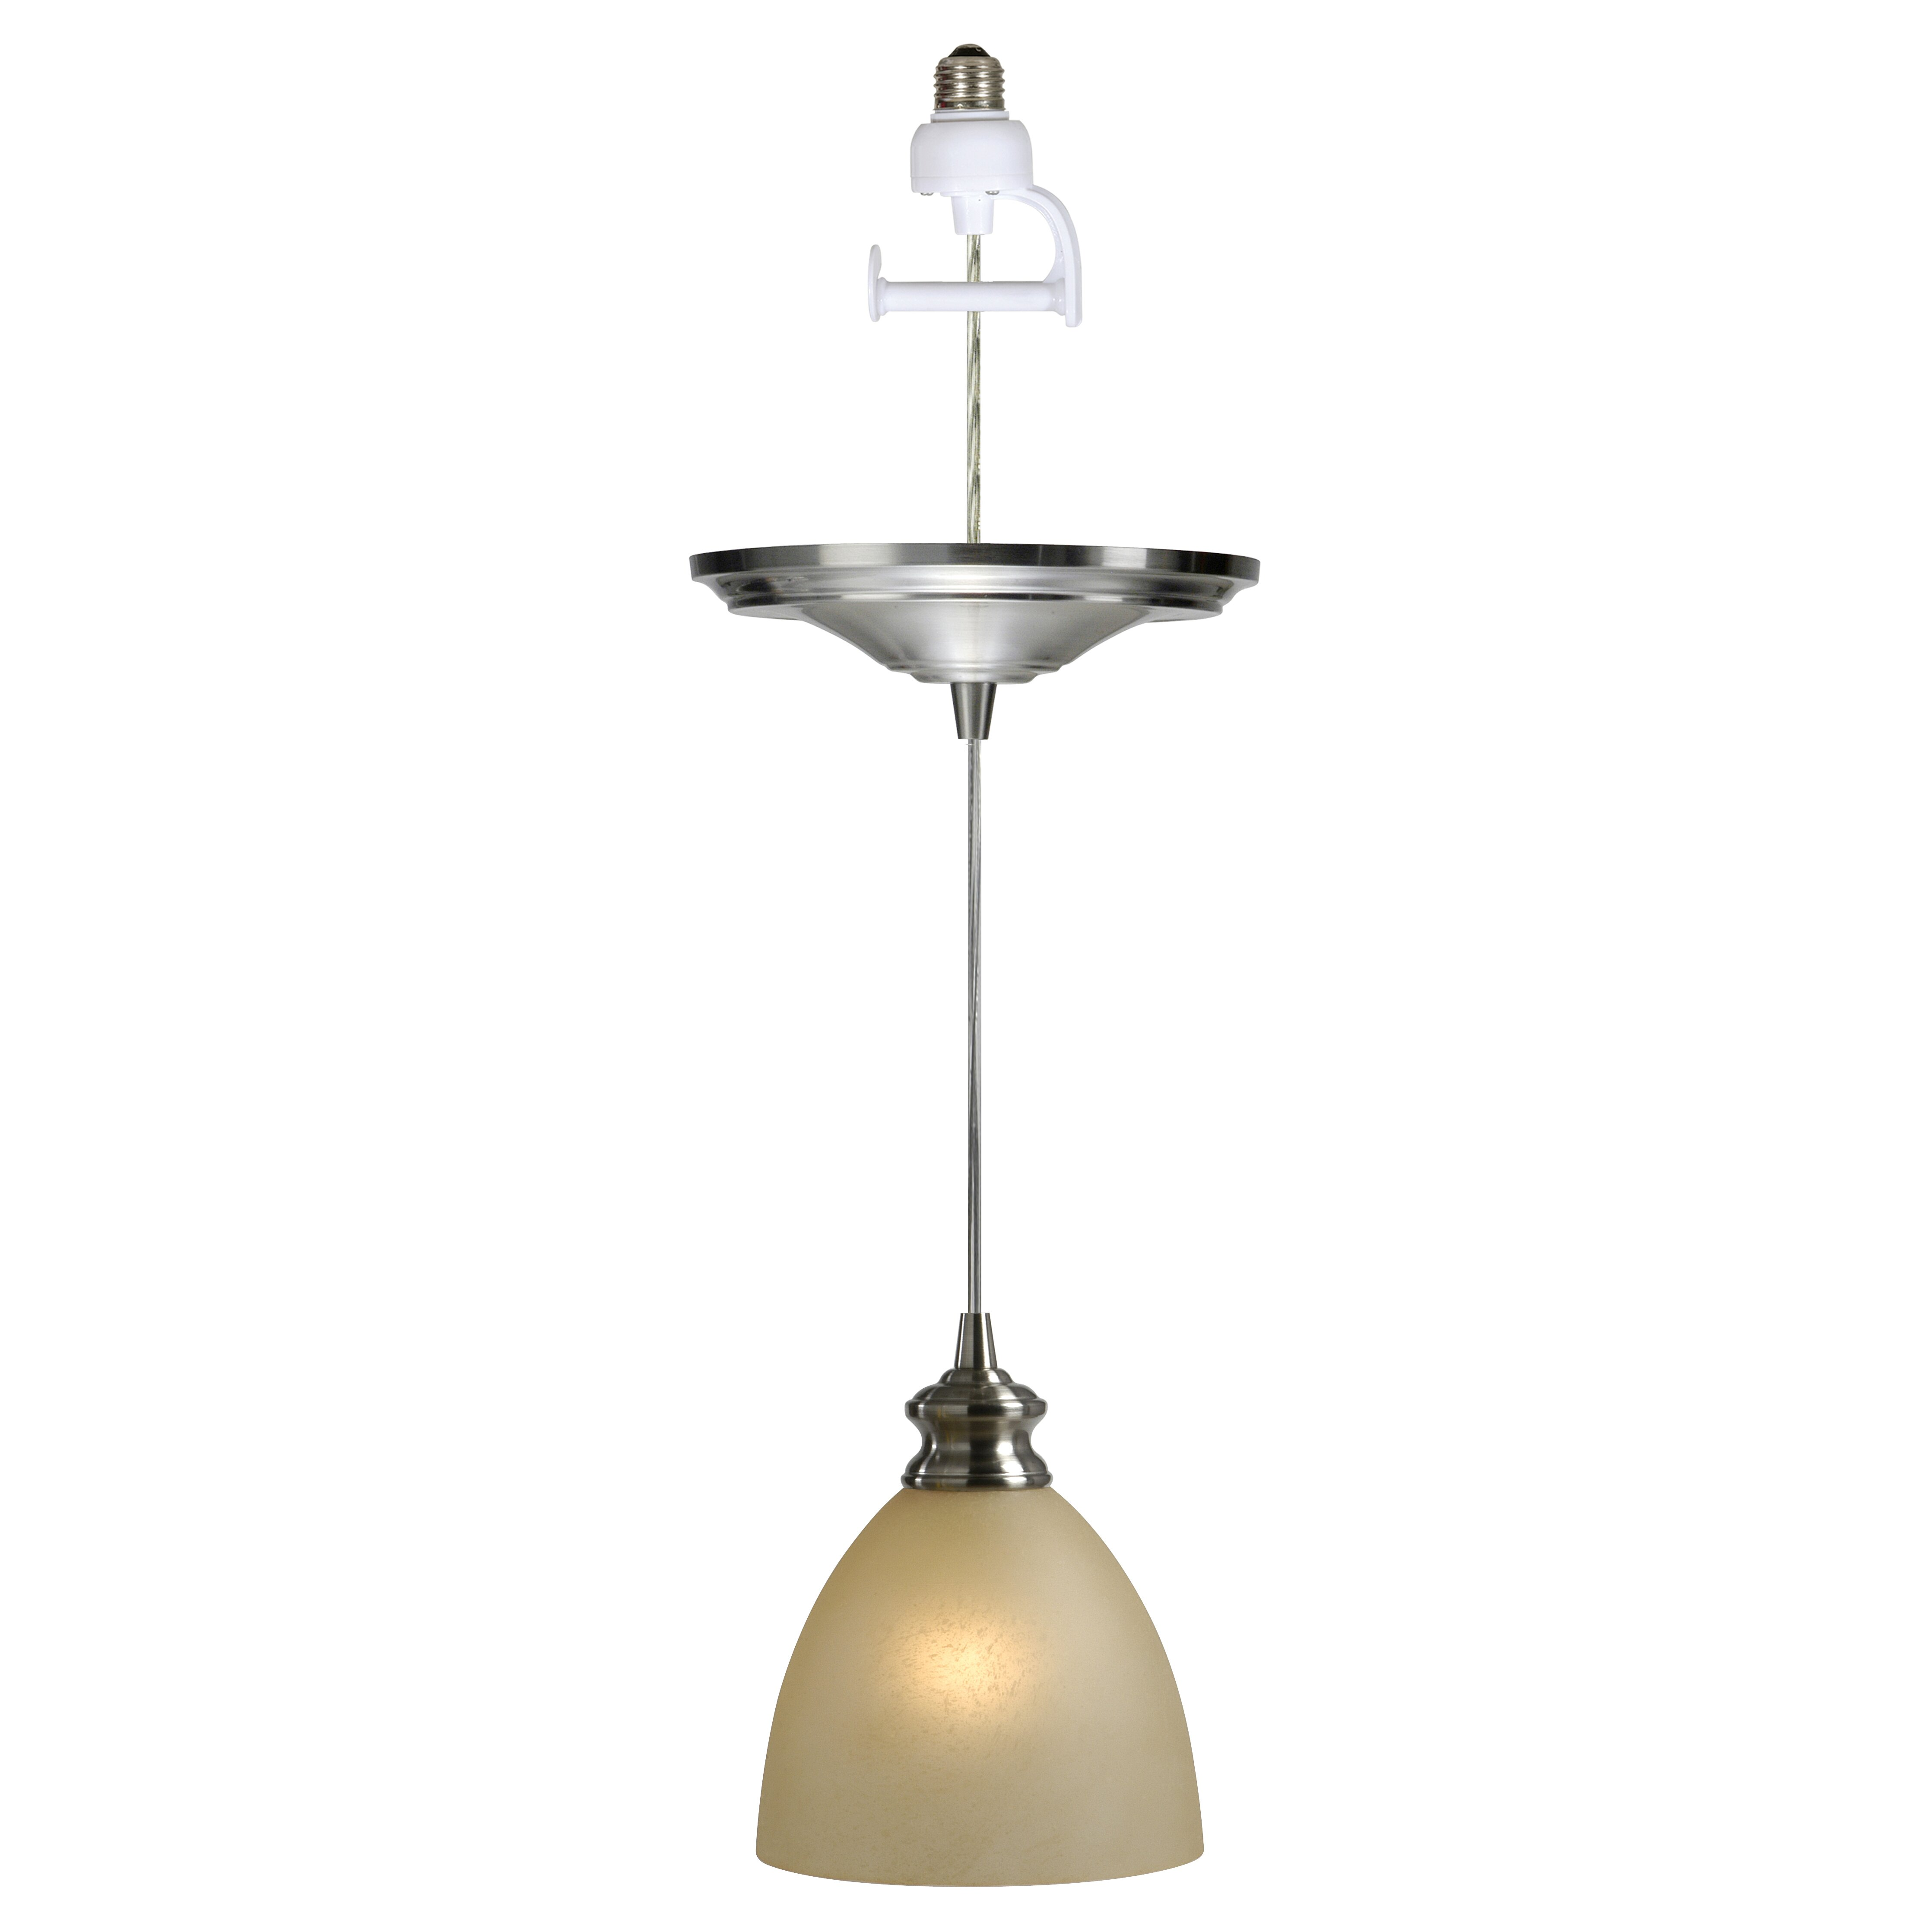 WorthHomeProducts Instant 1 Light Mini Pendant